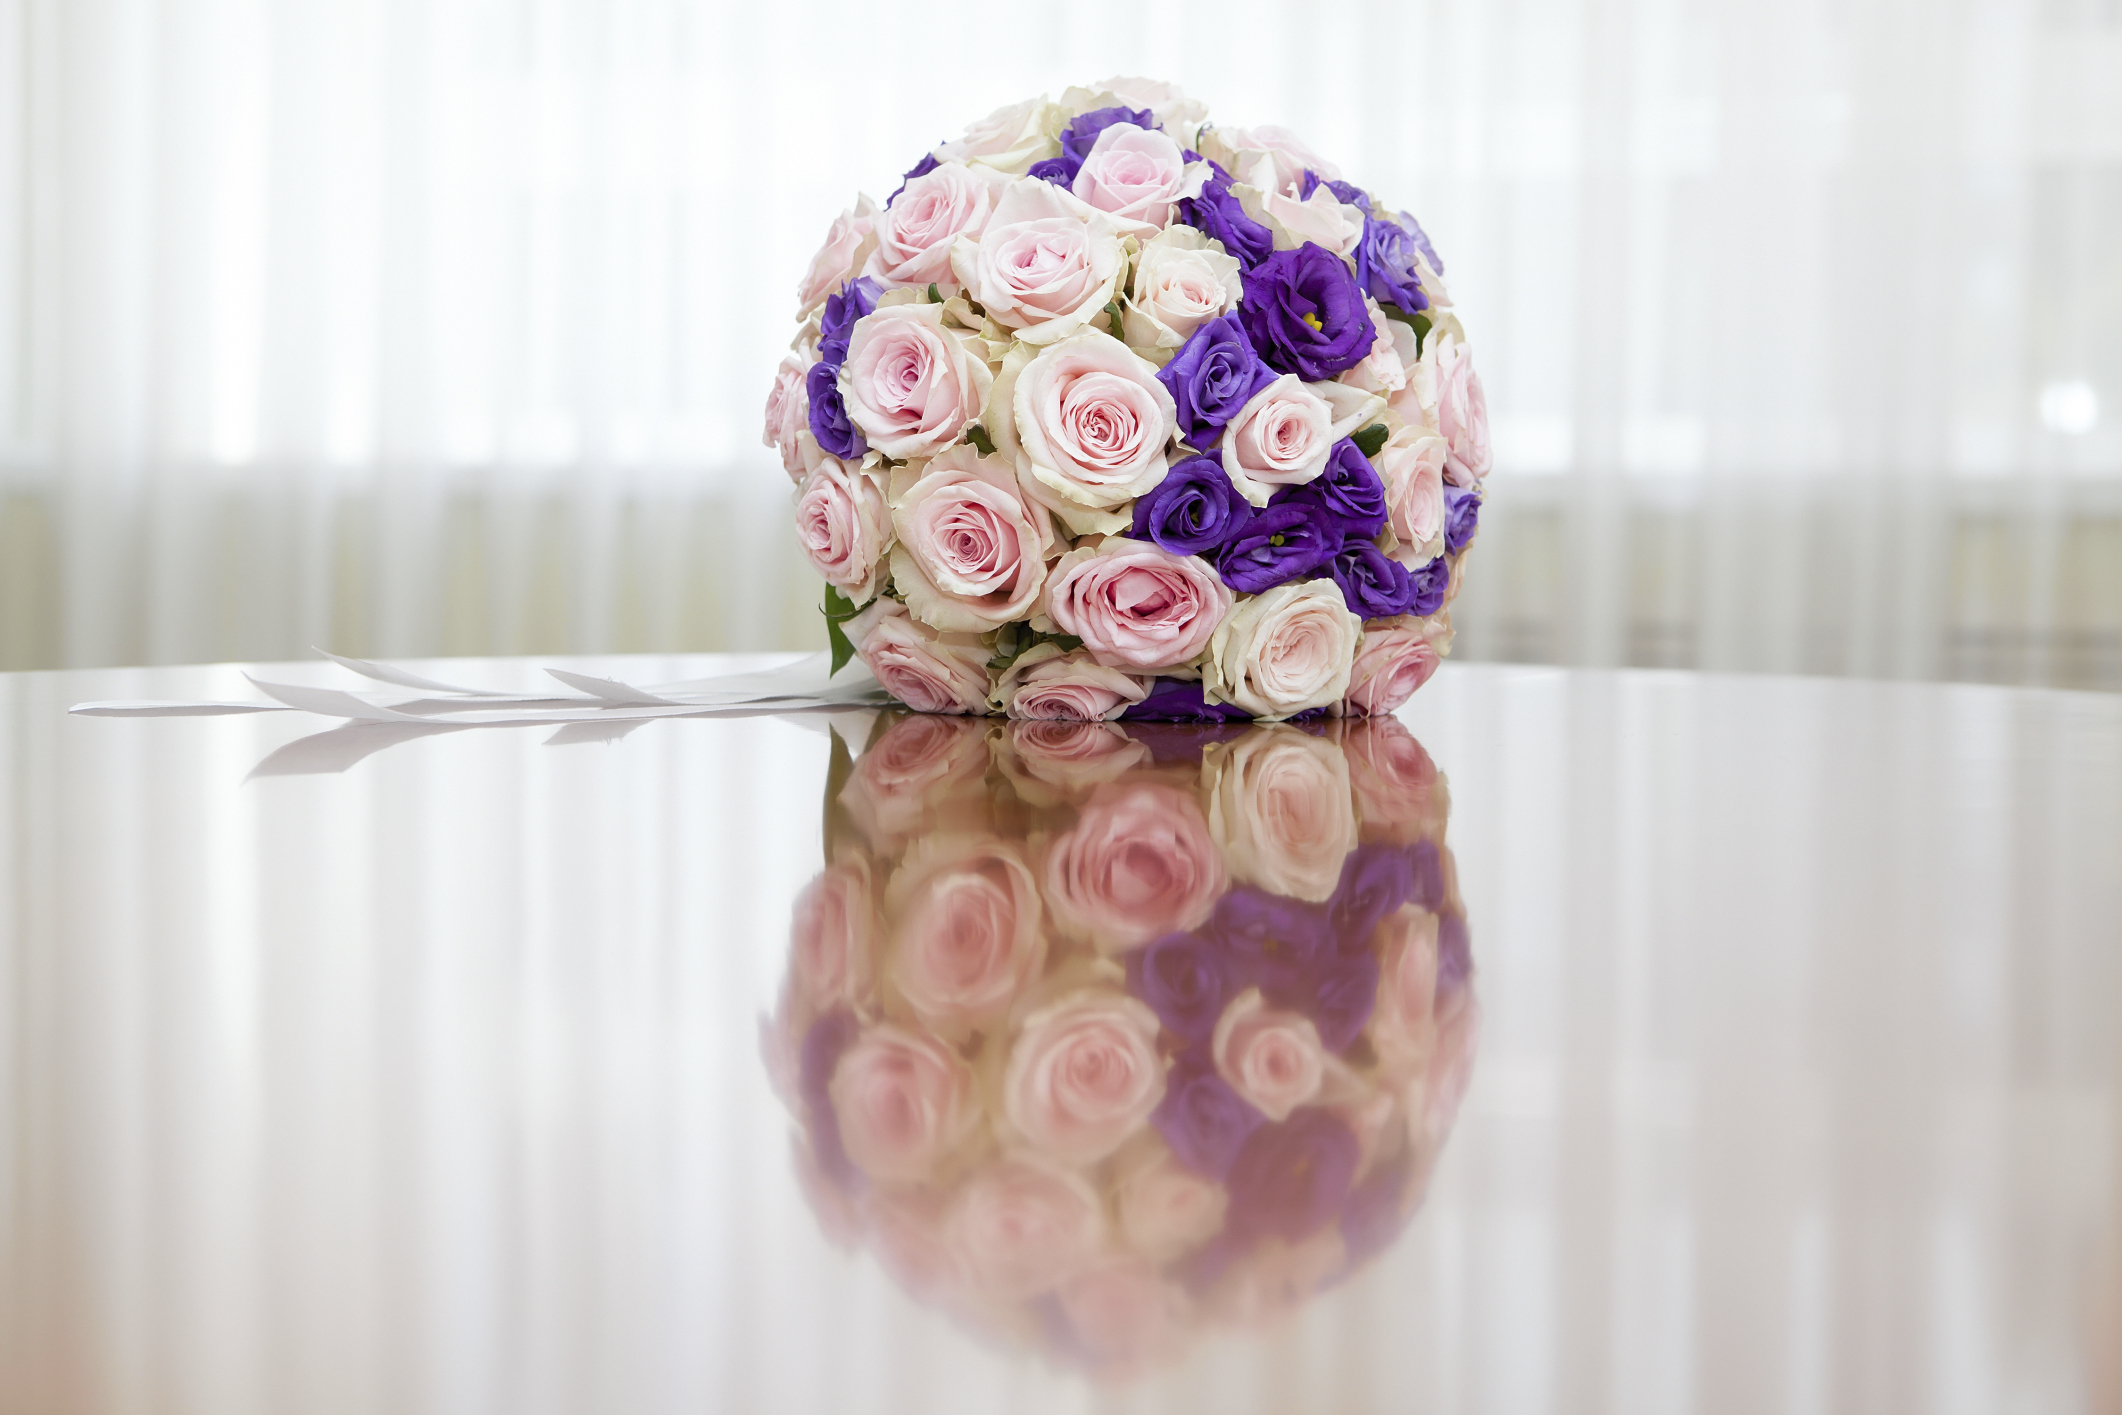 Bridal bouquets - what to do after the wedding - Articles - Easy ...